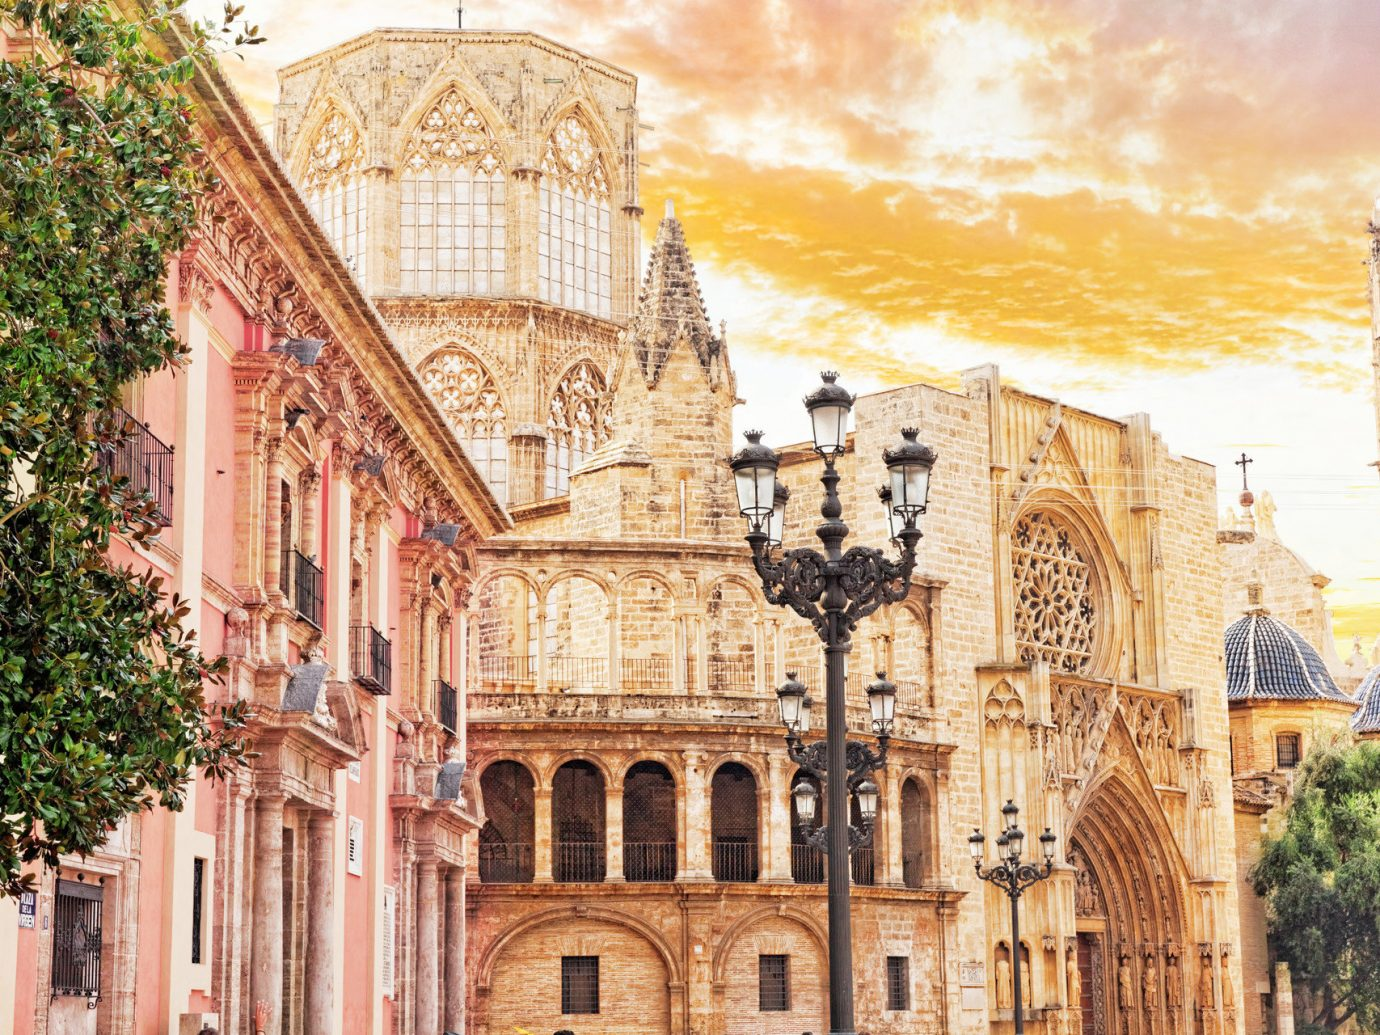 Trip Ideas building outdoor landmark Town neighbourhood Architecture facade tourism cathedral palace cityscape ancient history estate place of worship Church synagogue